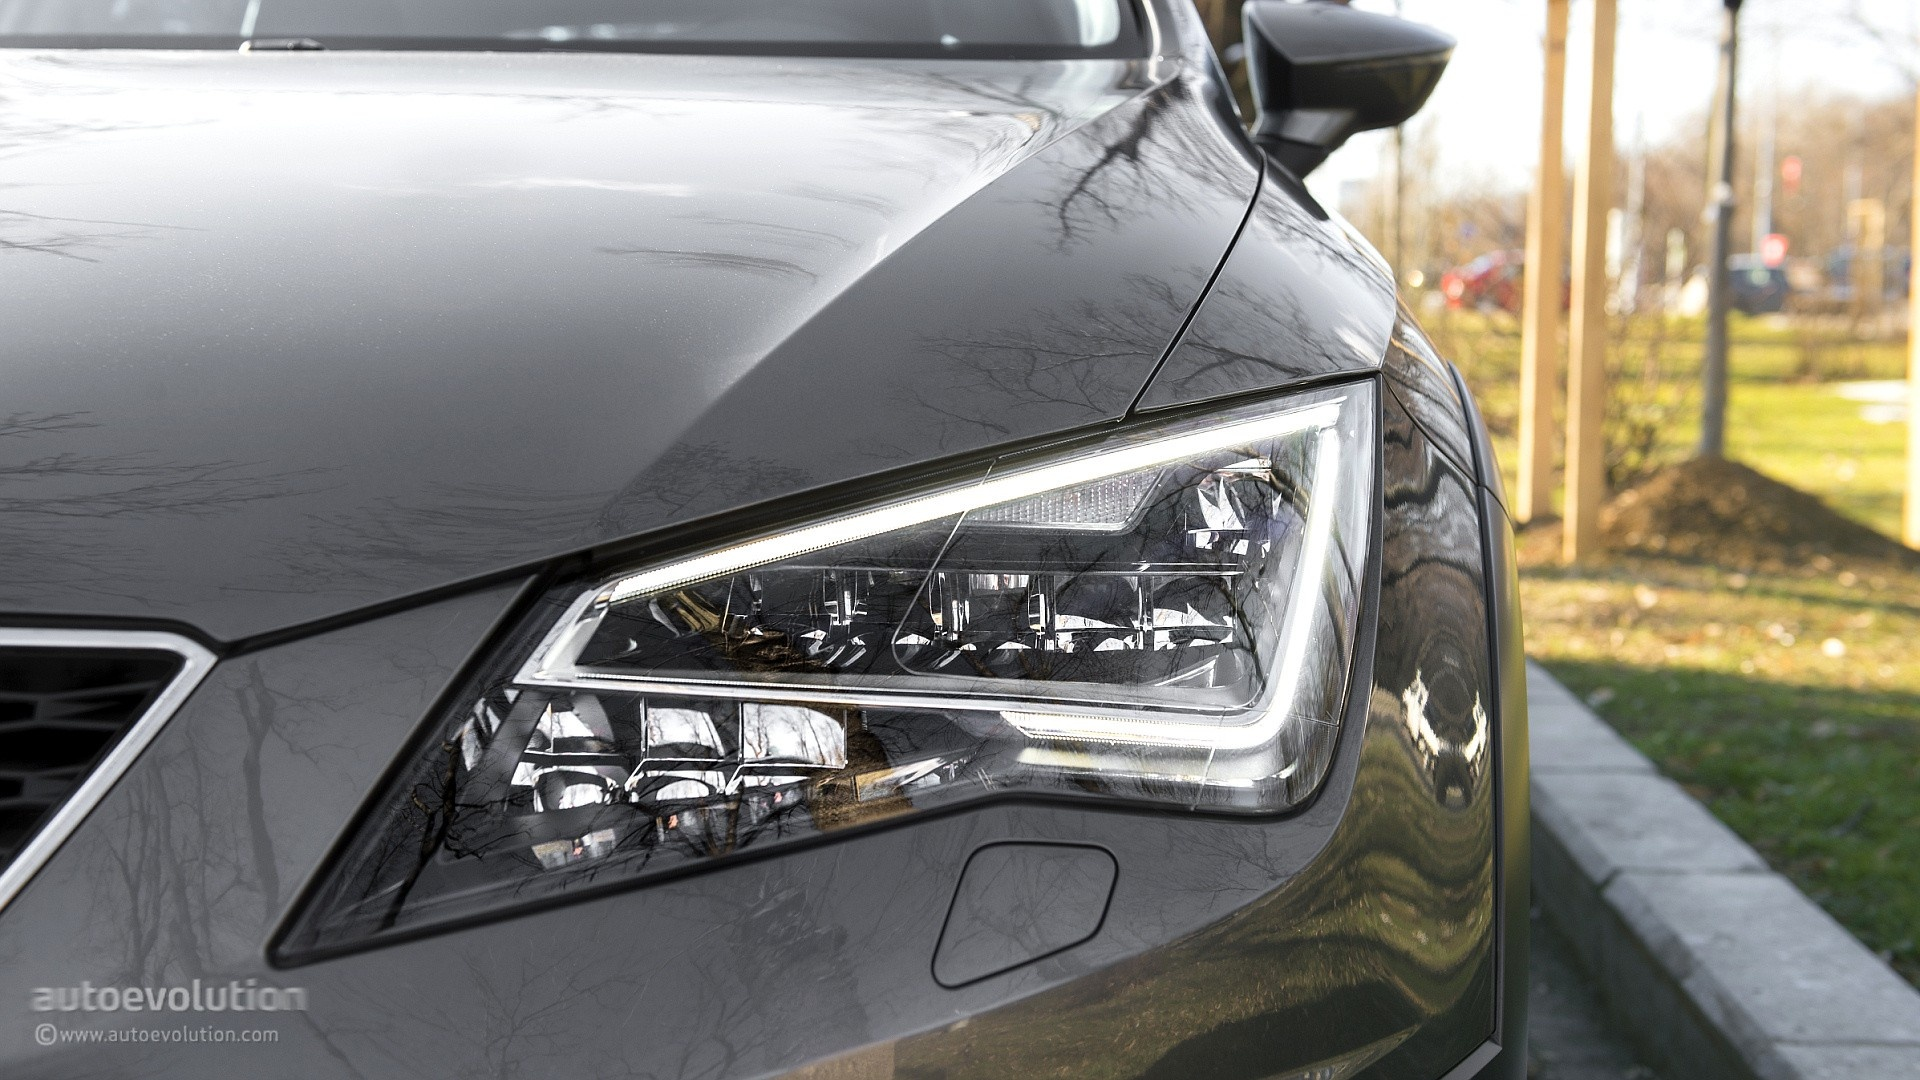 What will it take for LED headlights to be banned? - Quora